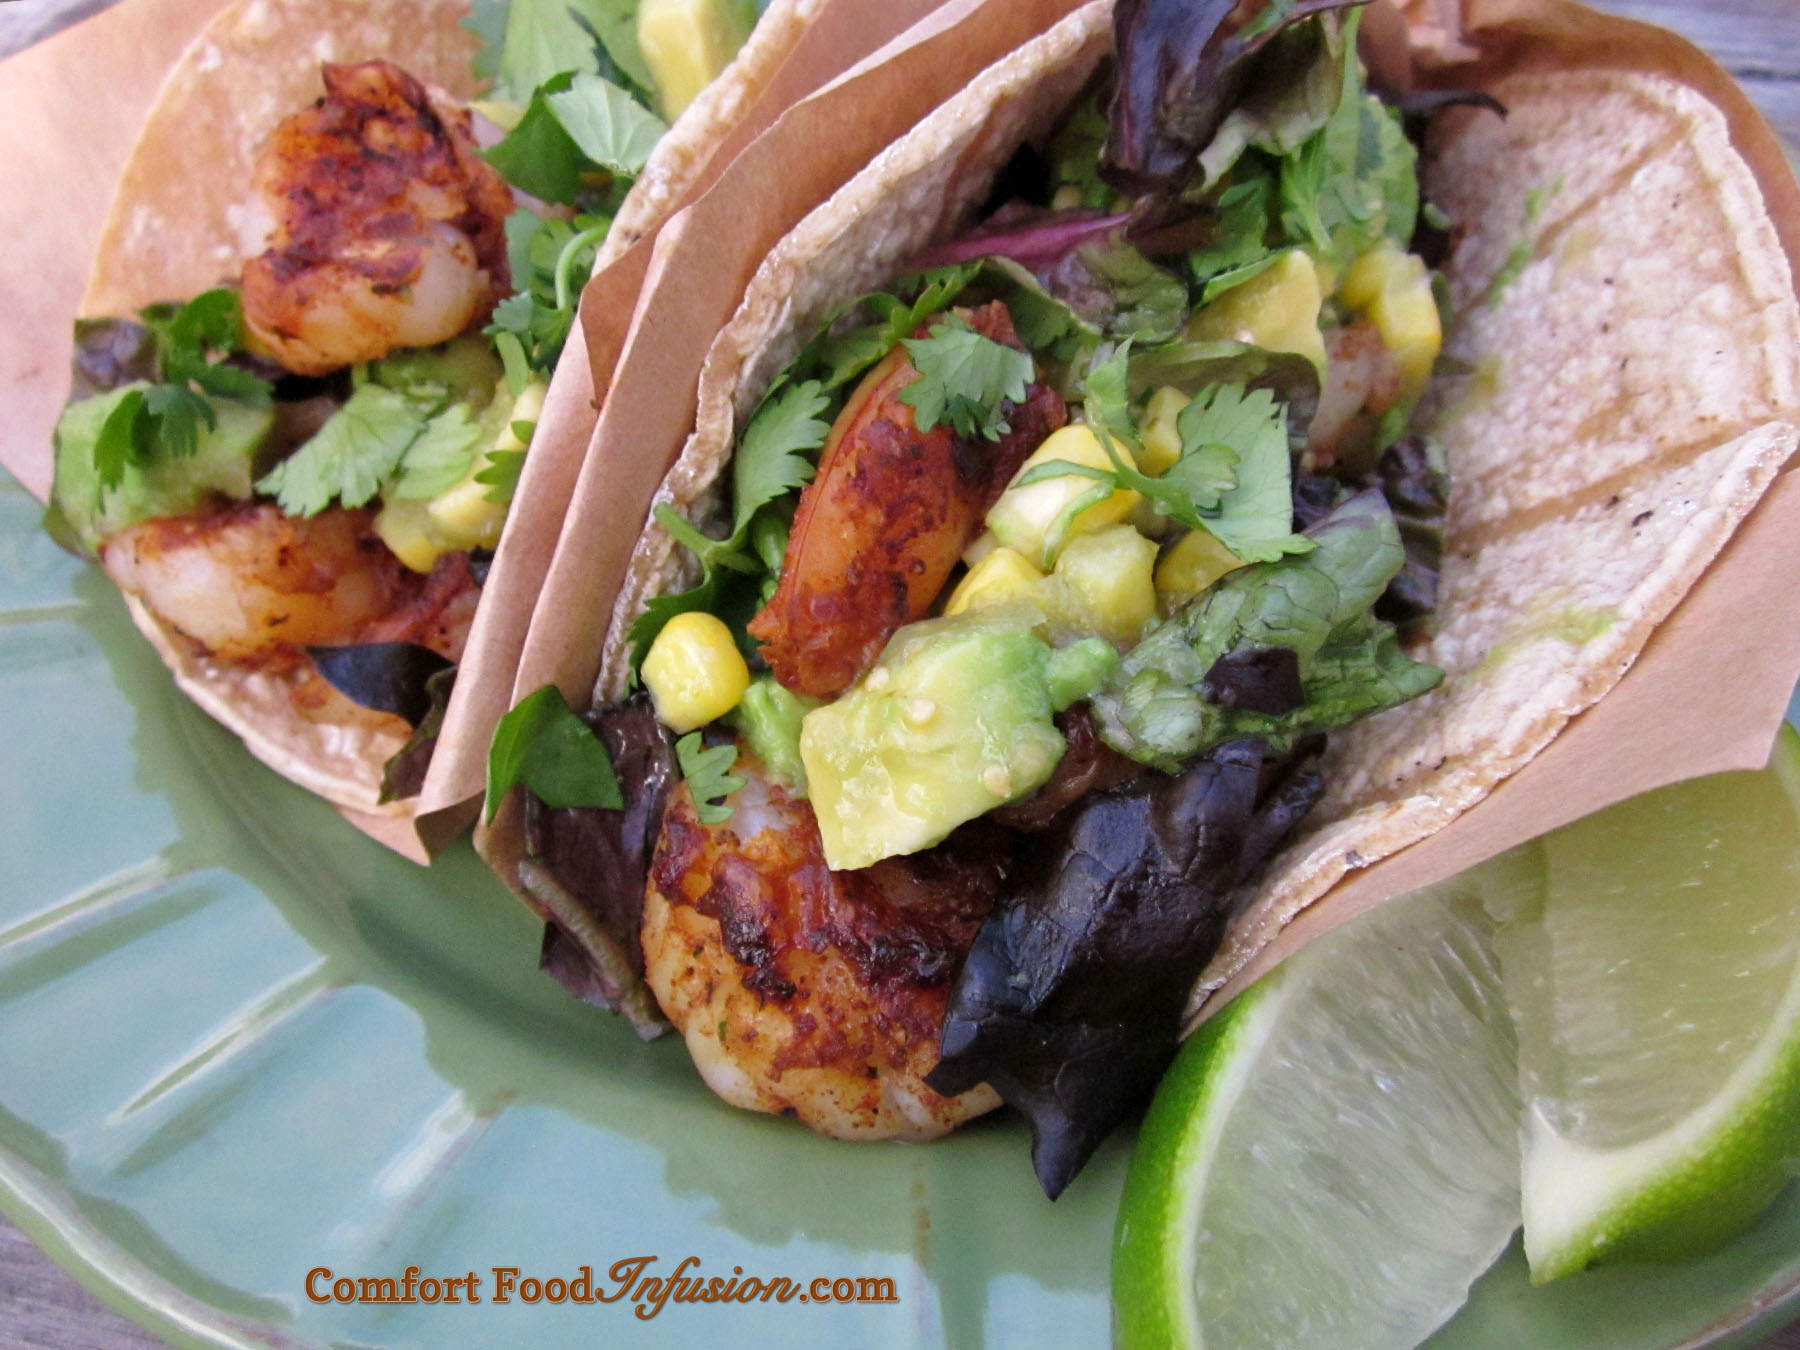 Shrimp Tacos with Avocado Salsa Verde - Comfort Food Infusion